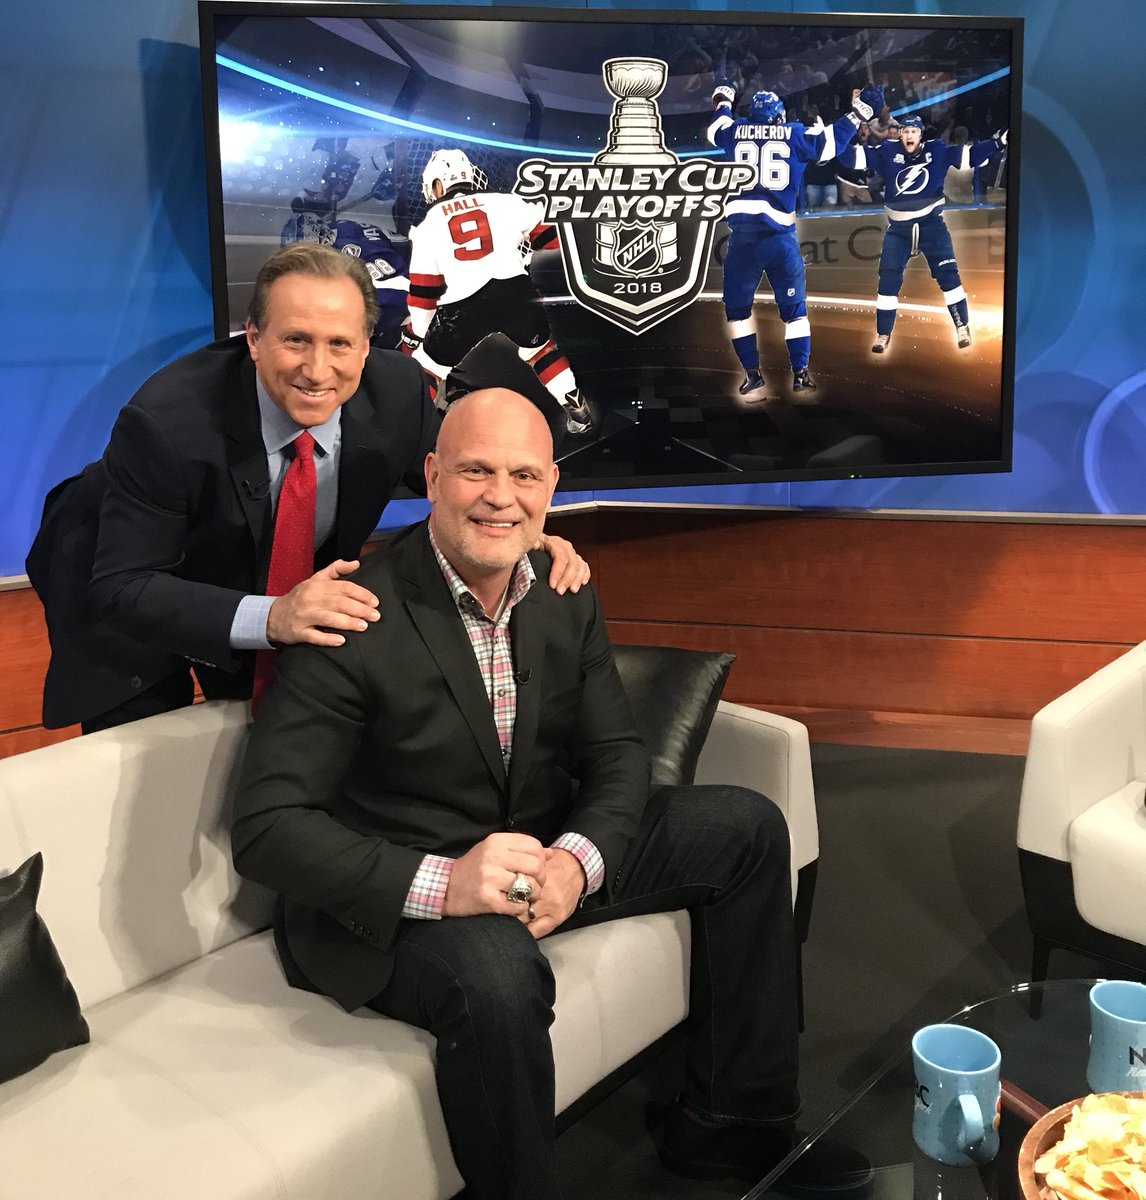 Coming up @SportsFinal4NY - @KenDaneykoMSG joins me to talk @NJDevils Playoff Hockey! Devils return to the @PruCenter Monday night on @MSGNetworks ! Join us at Midnight!